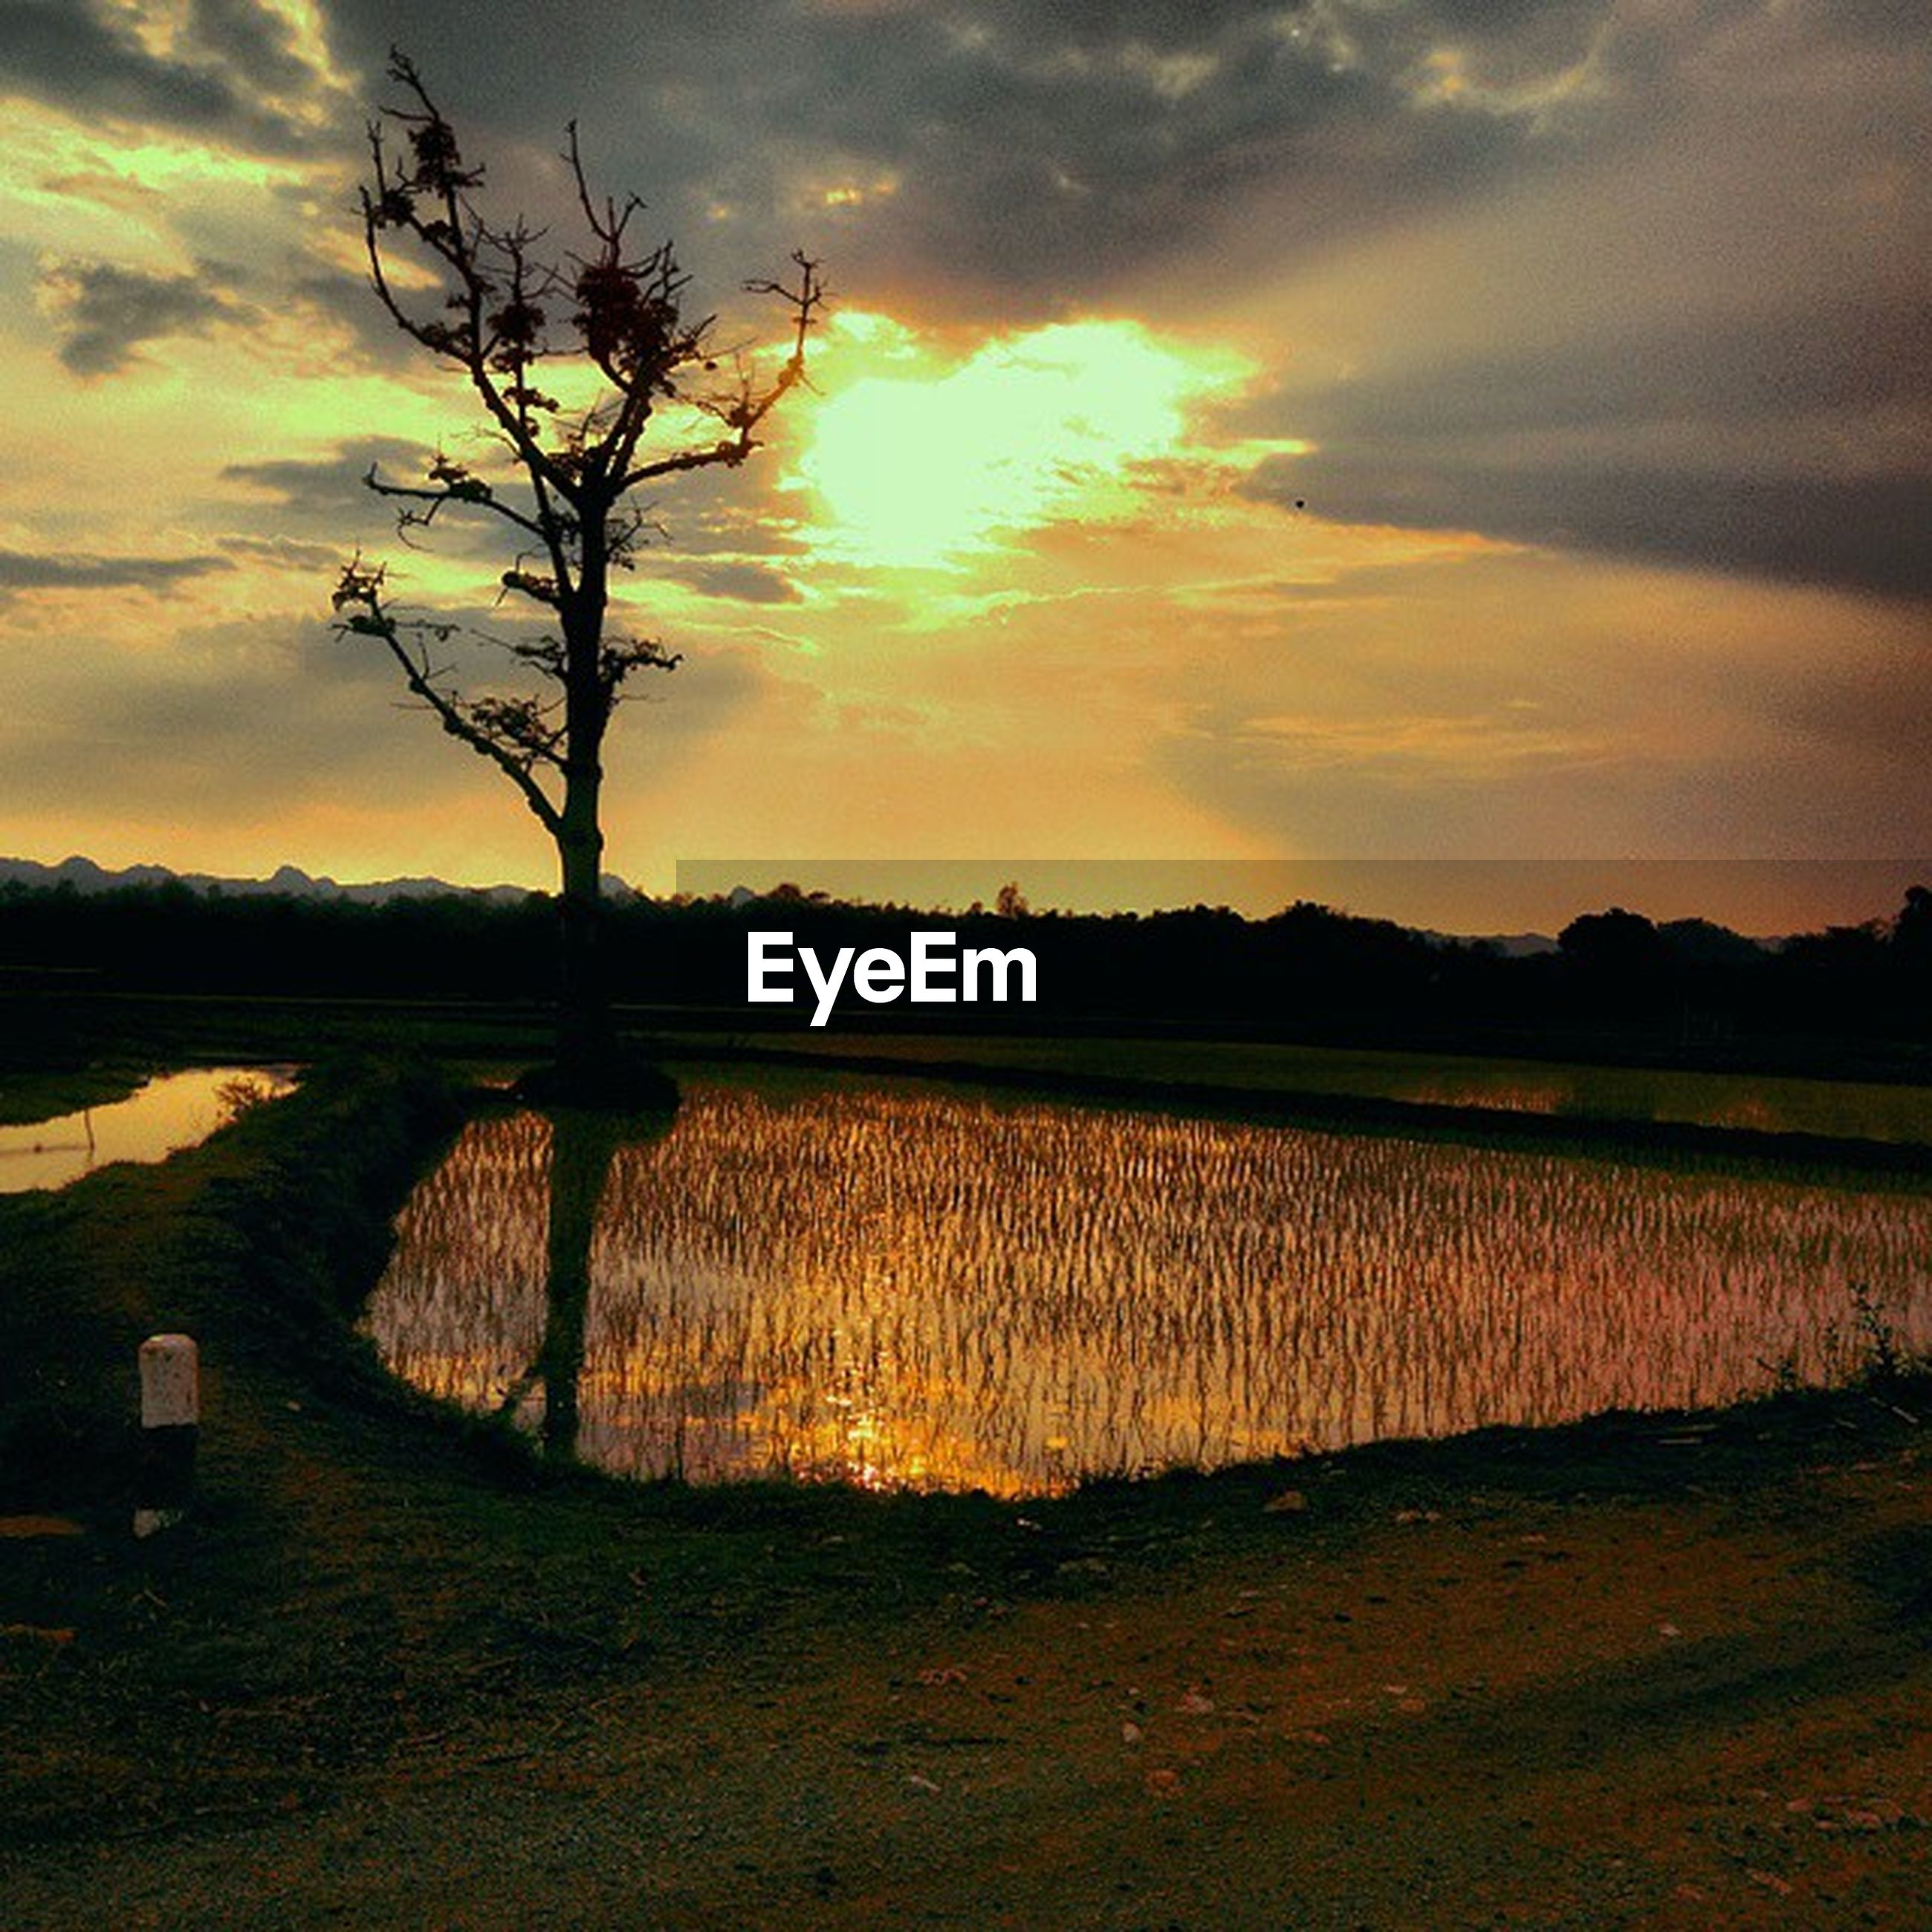 sunset, sky, tranquil scene, tranquility, tree, scenics, landscape, cloud - sky, bare tree, beauty in nature, field, nature, orange color, silhouette, dramatic sky, idyllic, cloud, rural scene, cloudy, water